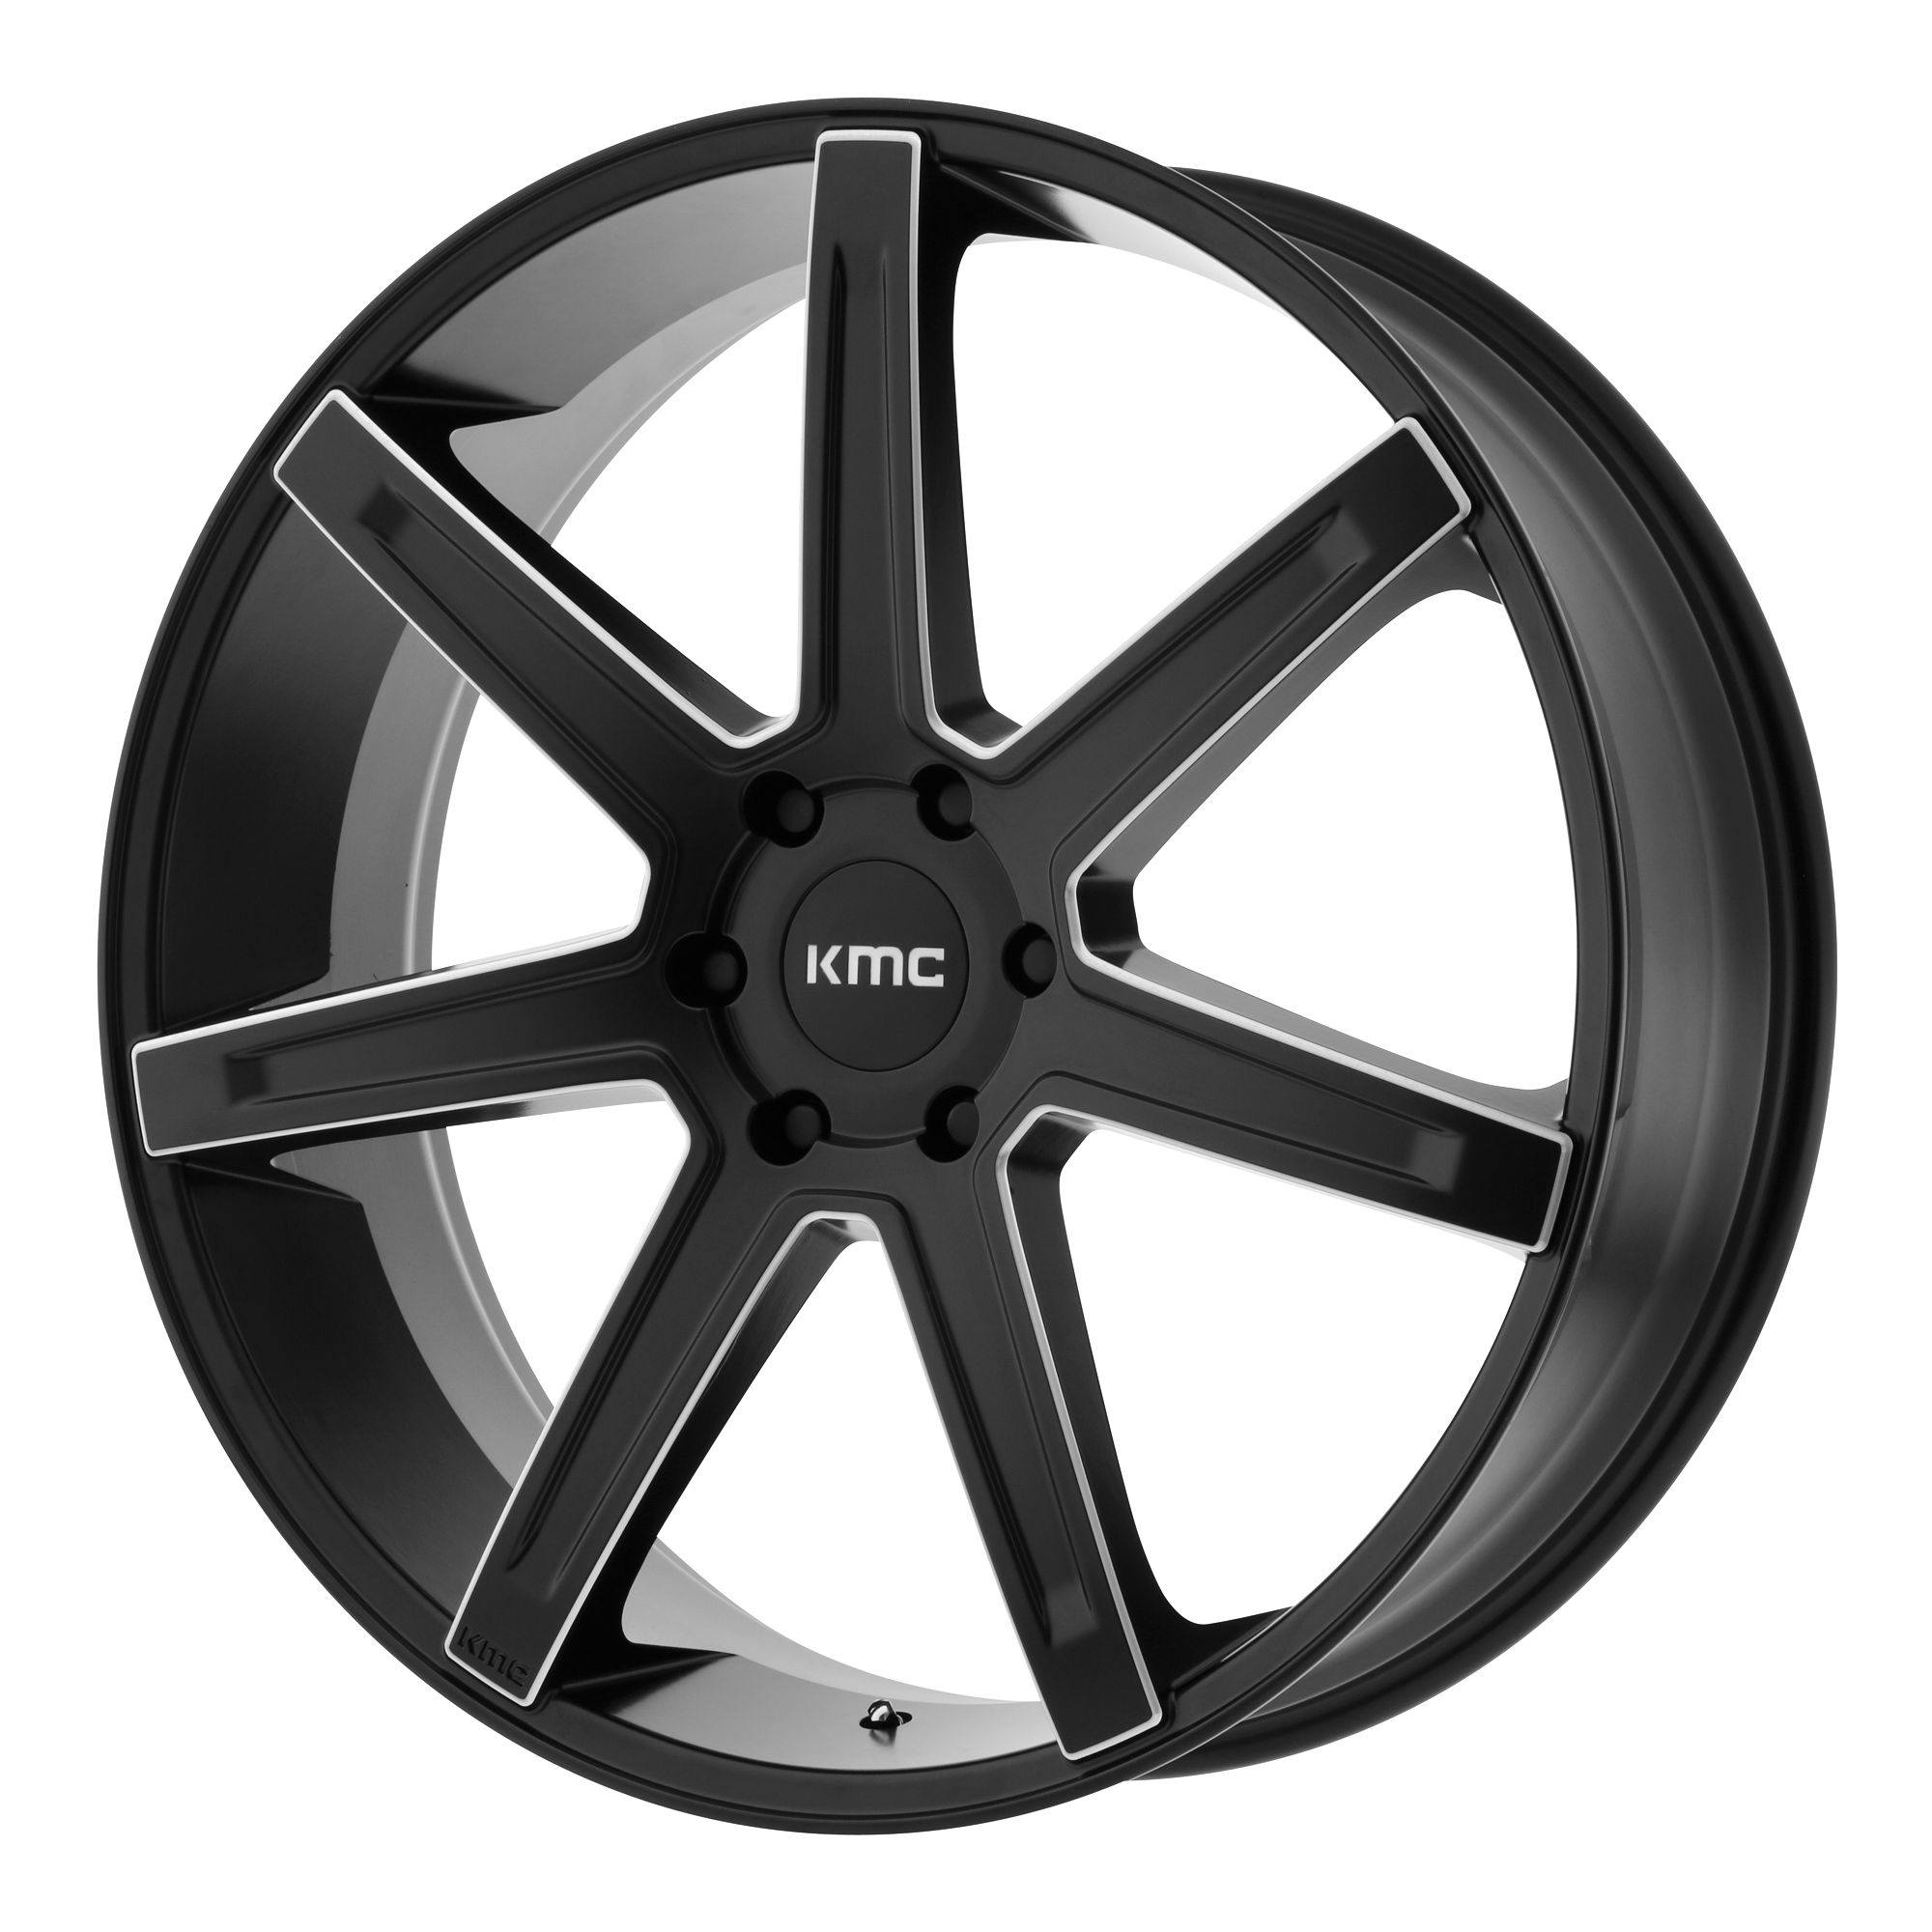 KMC Wheels REVERT Satin Black Milled